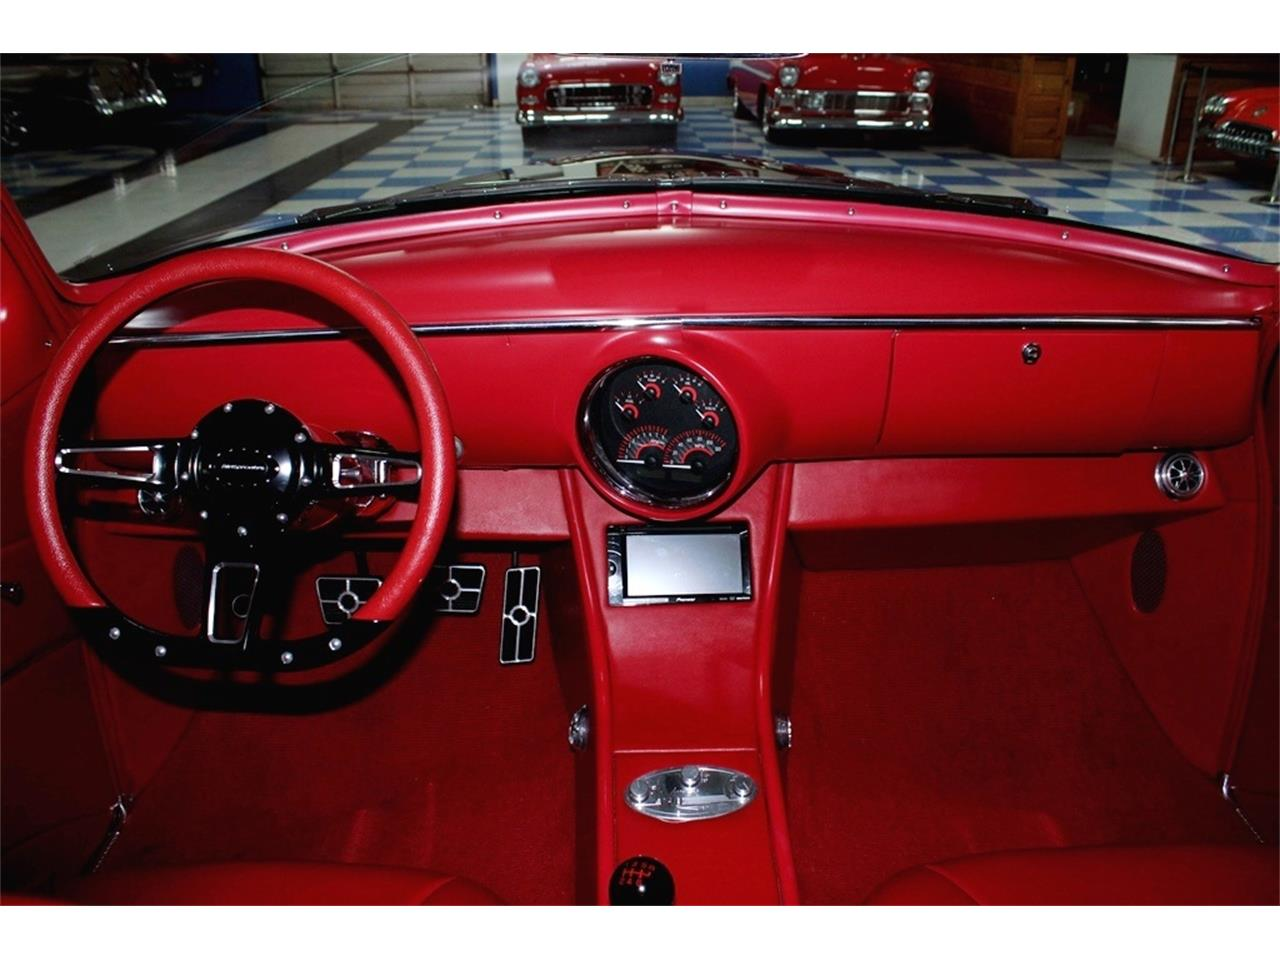 Large Picture of 1950 Styleline Deluxe located in Texas - $79,900.00 - QQK1